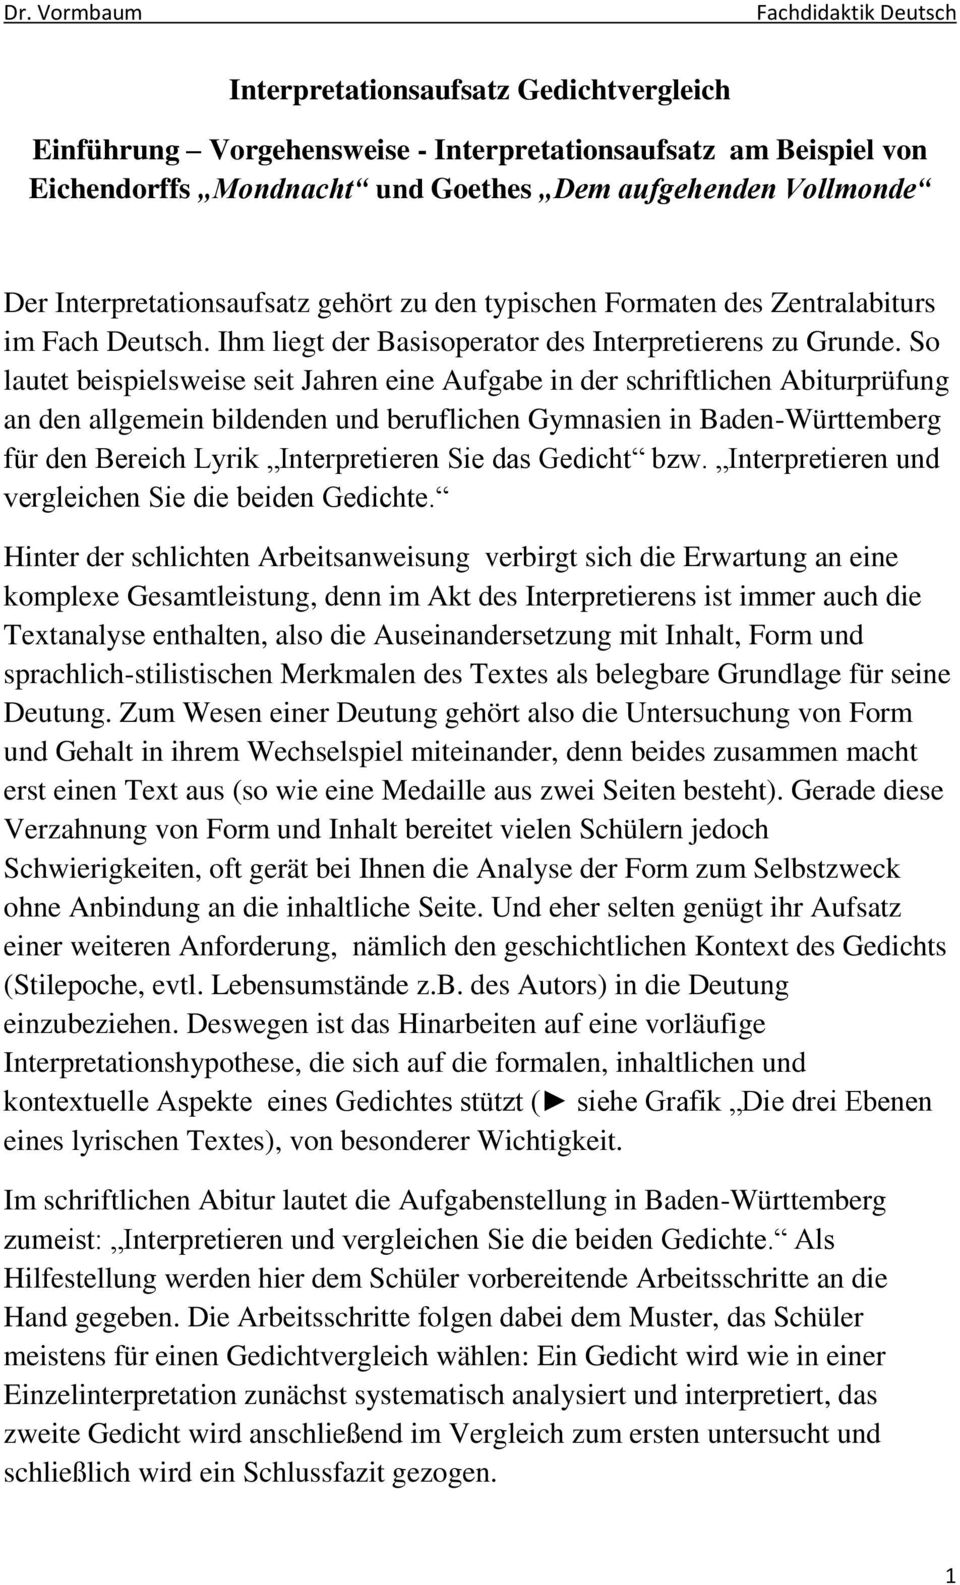 Interpretationsaufsatz Gedichtvergleich Pdf Free Download